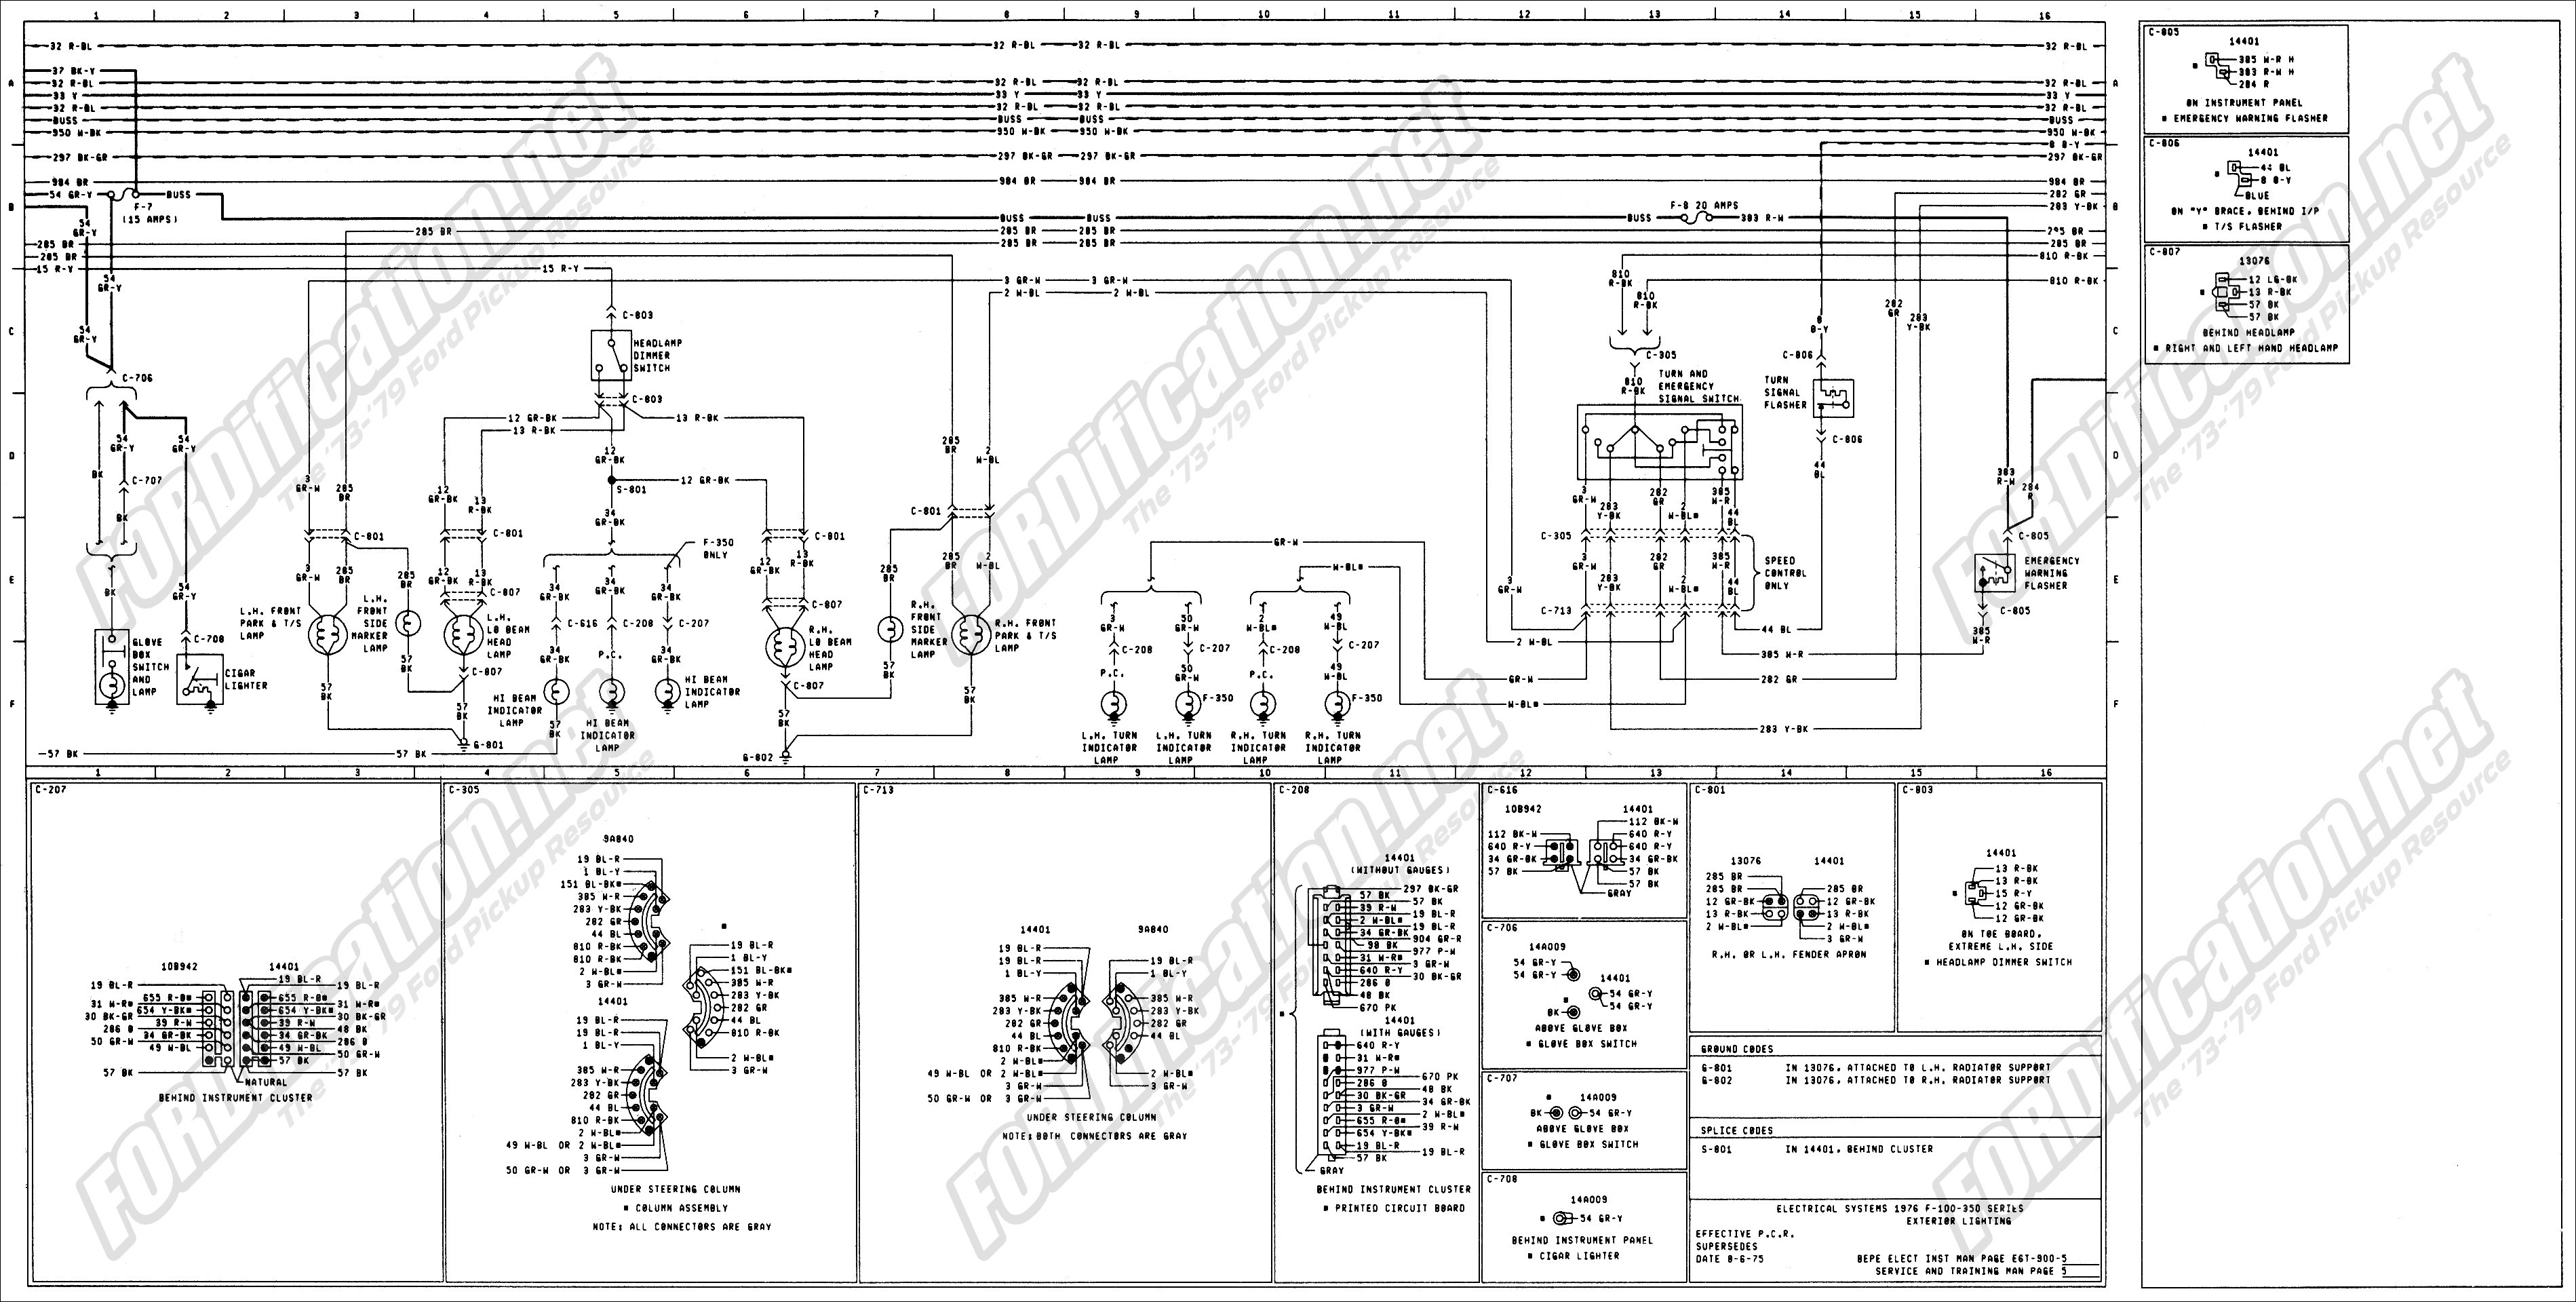 Marvelous 1995 Ford F150 Ignition Switch Wiring Diagram Rate 1973 1979 Truck Wiring Cloud Orsalboapumohammedshrineorg